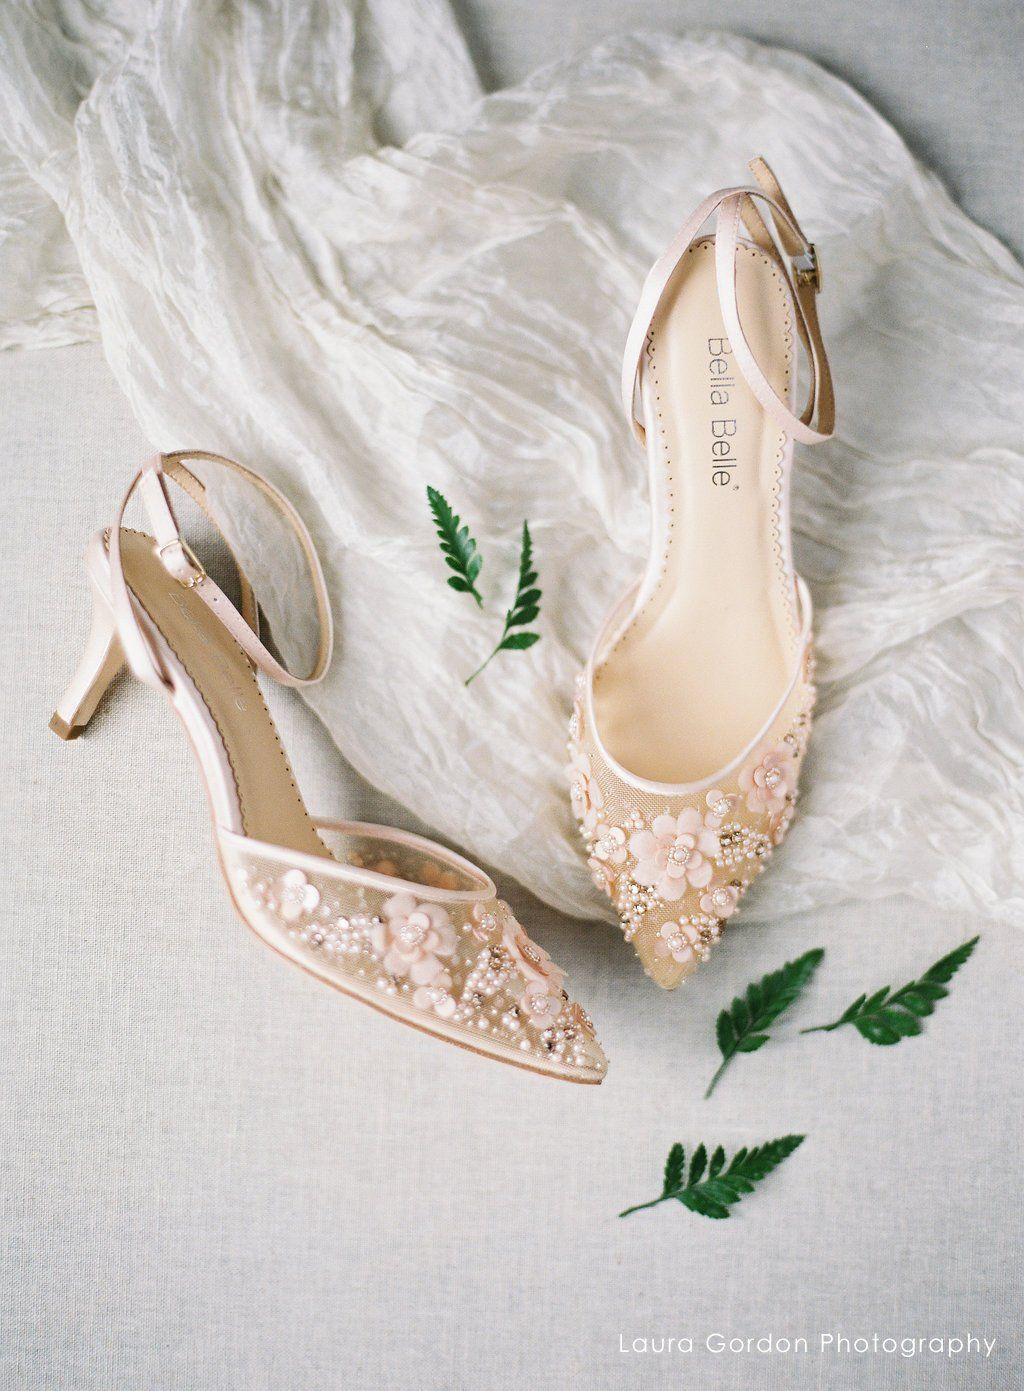 a5b839d0402ca Rosa Blush - Euphoria collection - Featuring 3D floral beading and  scattering pearls - Laser-cut chiffon and pearlized petals - Comfortable kitten  heel with ...